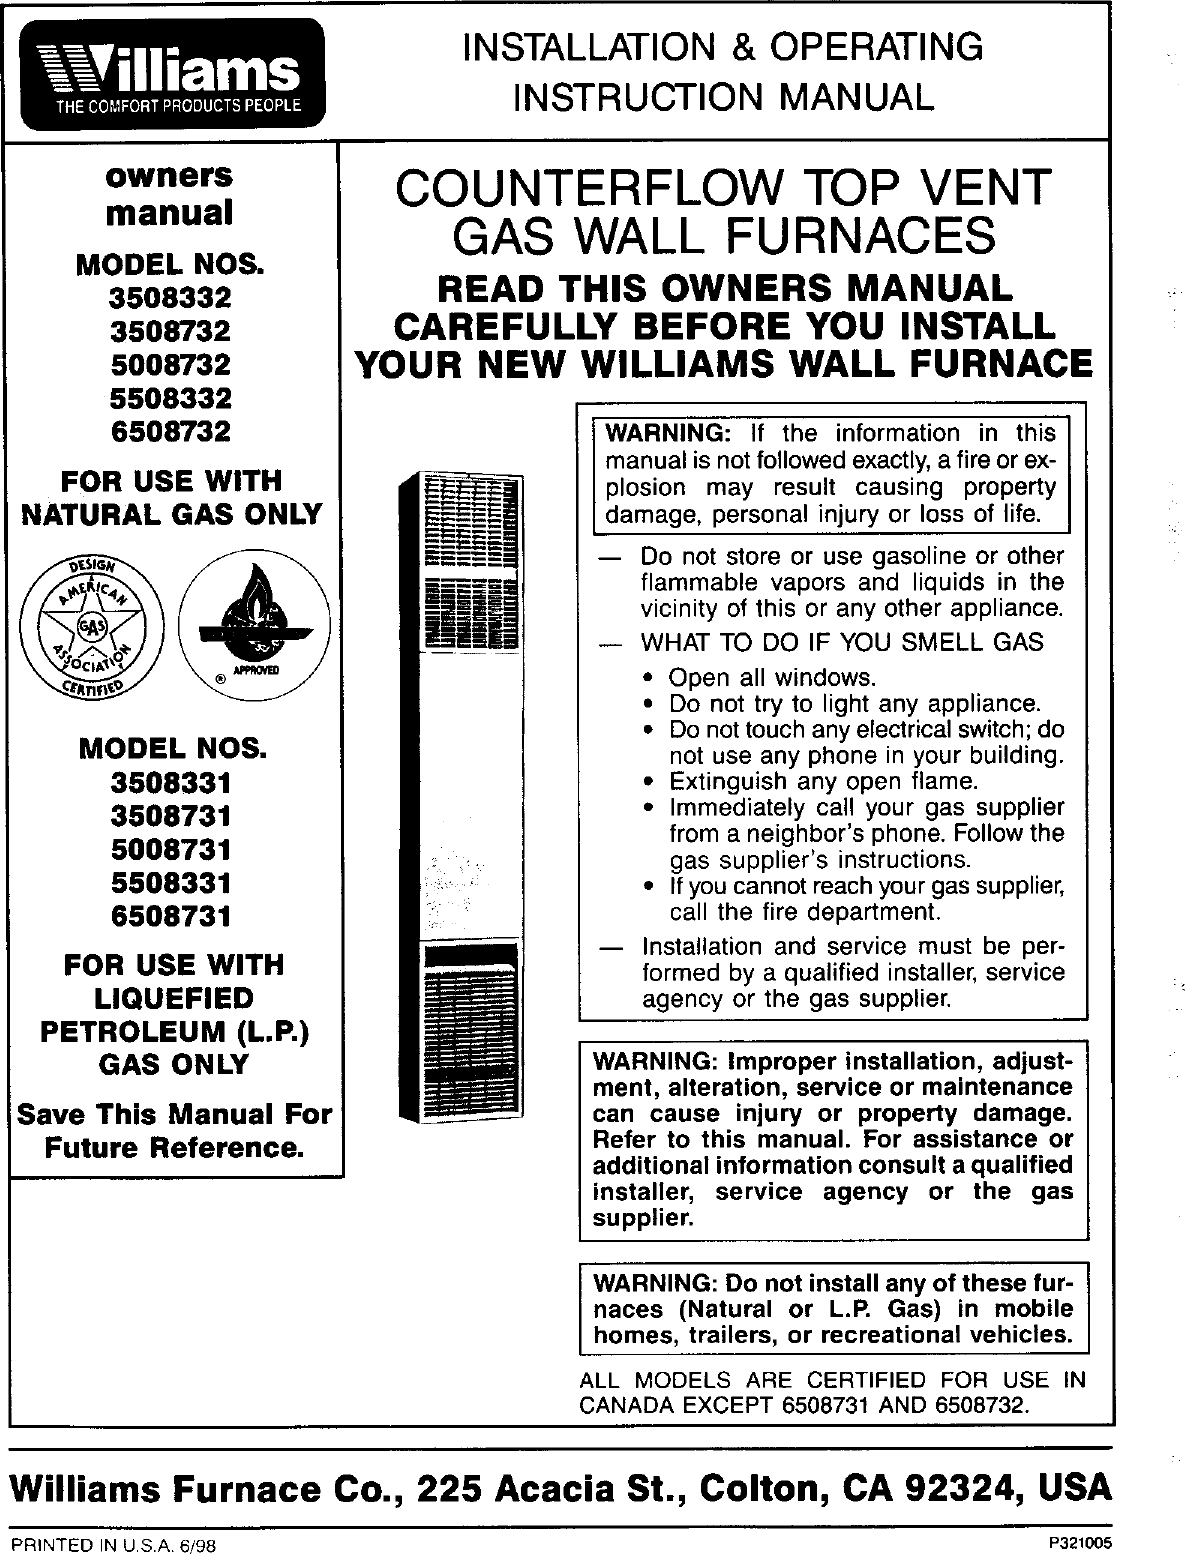 Williams Wall Heater Instructions The Best 2018 Well Tec E116997 Wiring Diagram 3003821 30 000 Btu Direct Vent Furnace 73 Efficiency